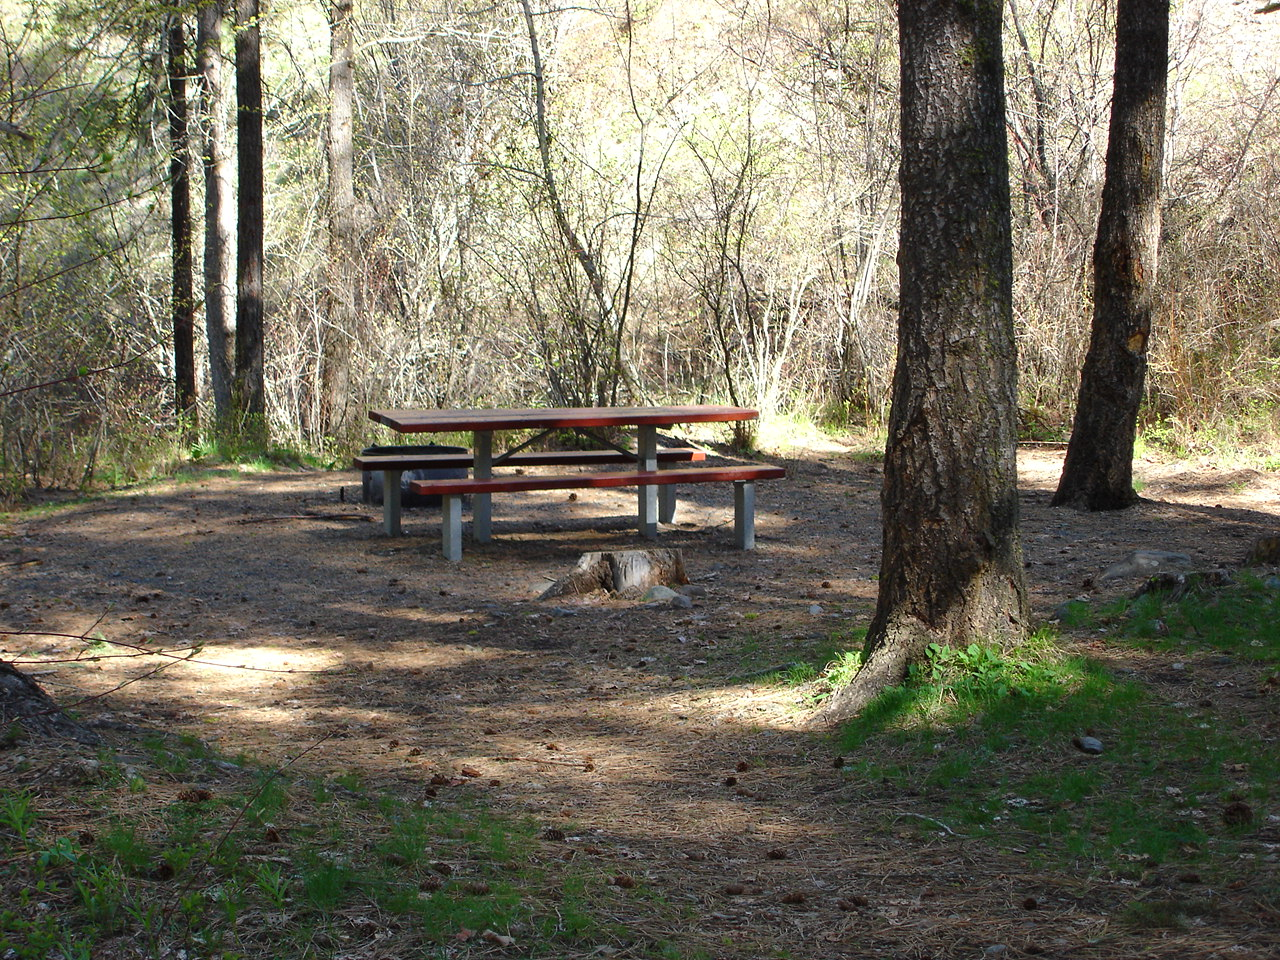 Camp site with table